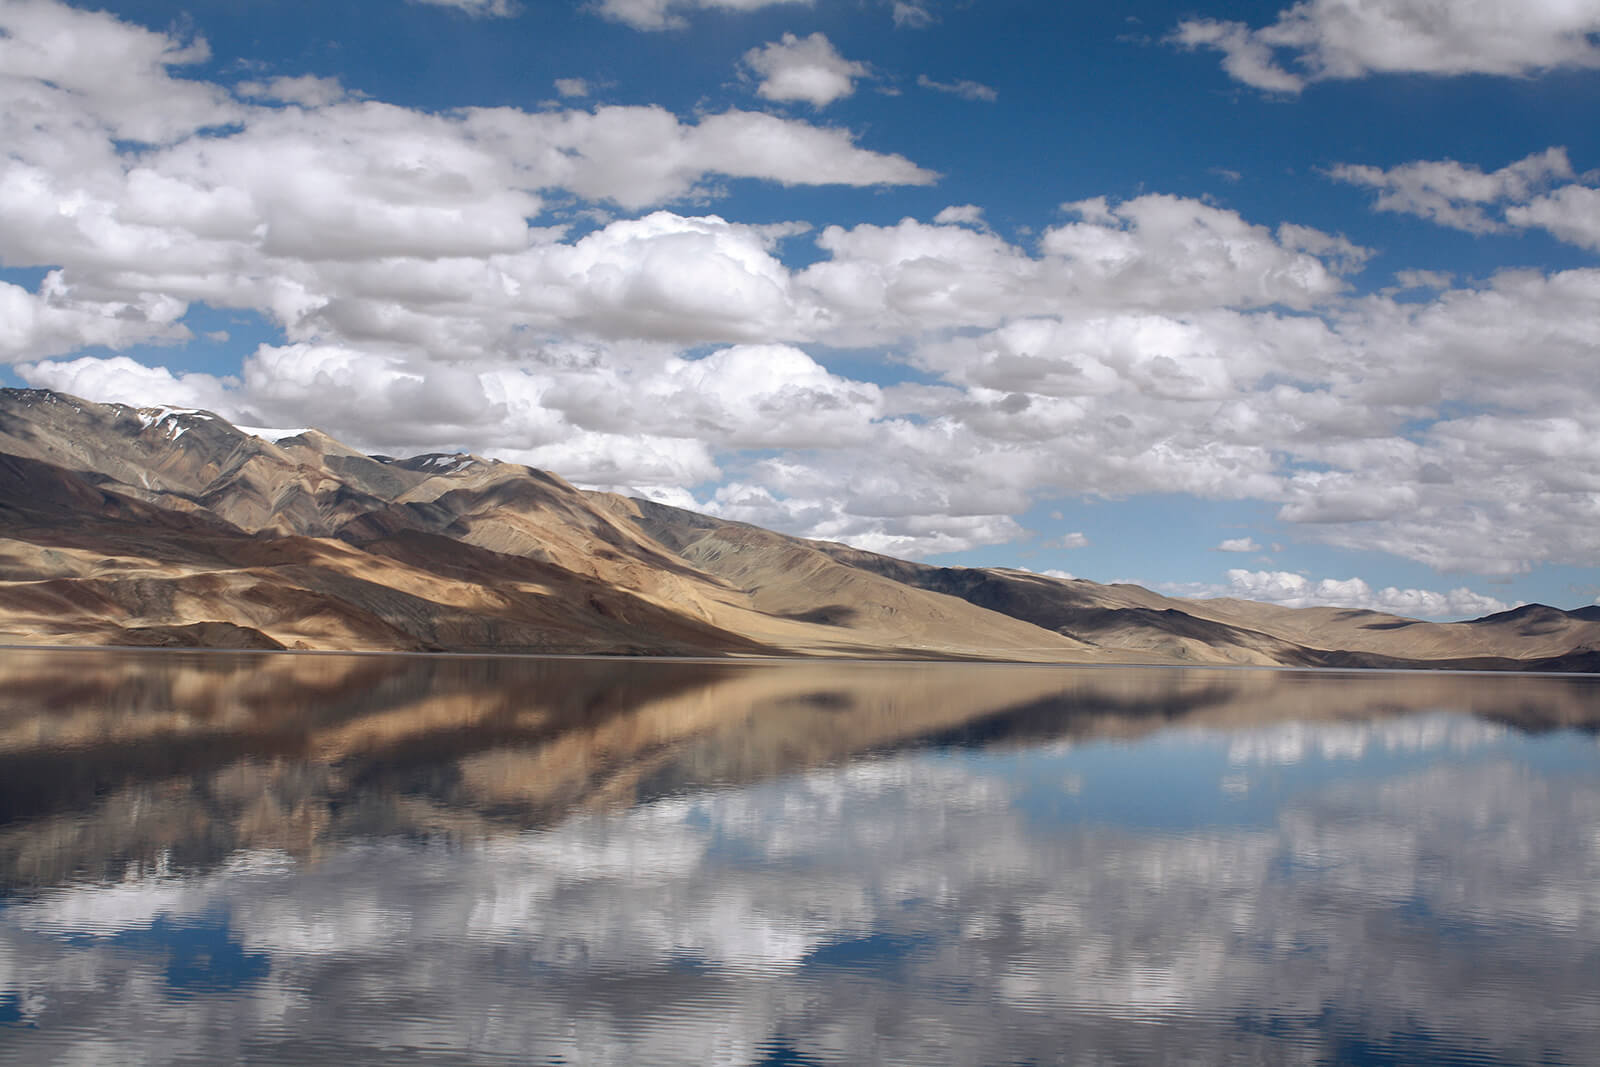 Tso Moriri in Ladakh, India